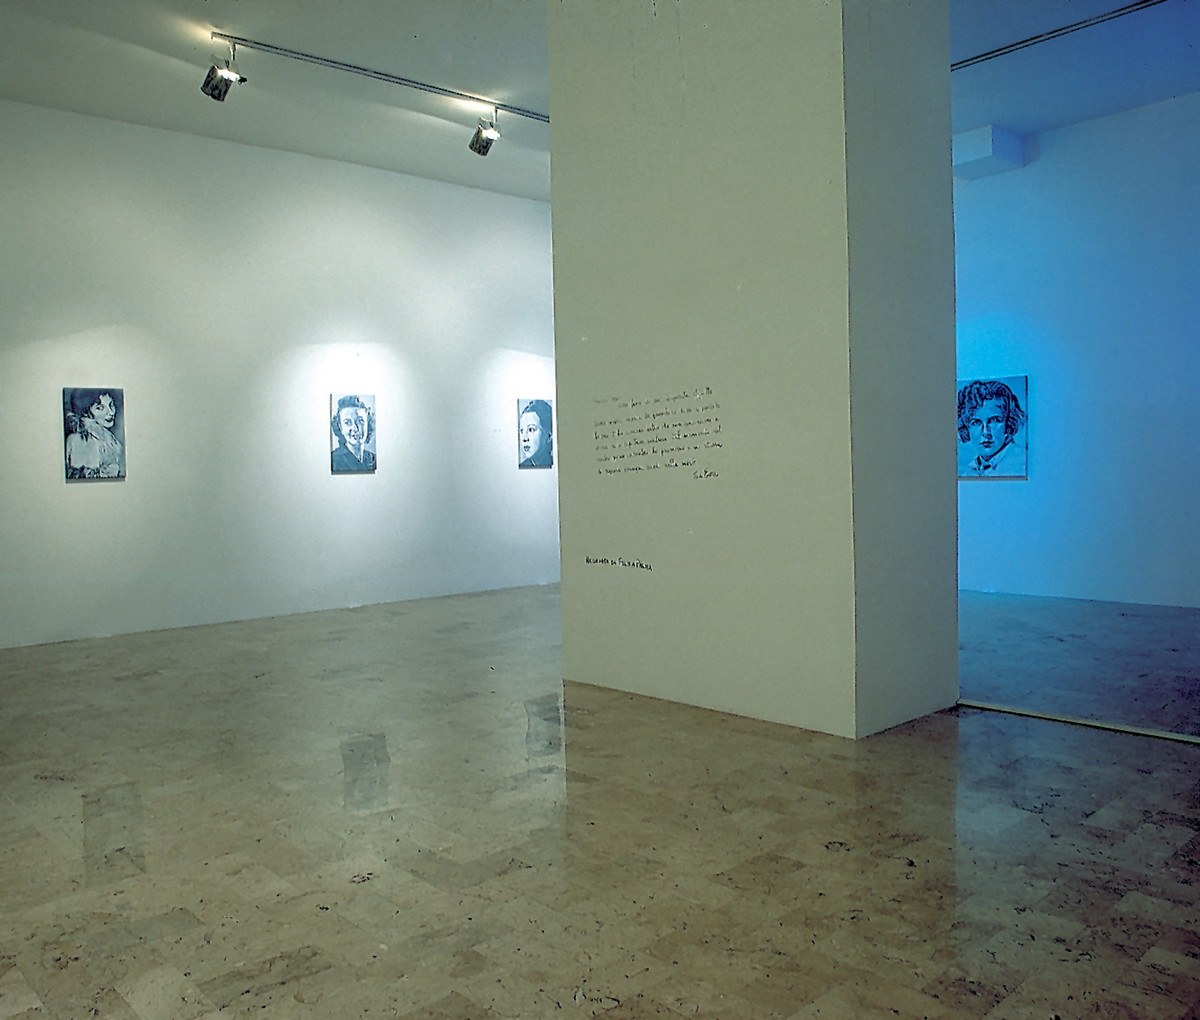 Femmes absolues, 2003, exhibition view